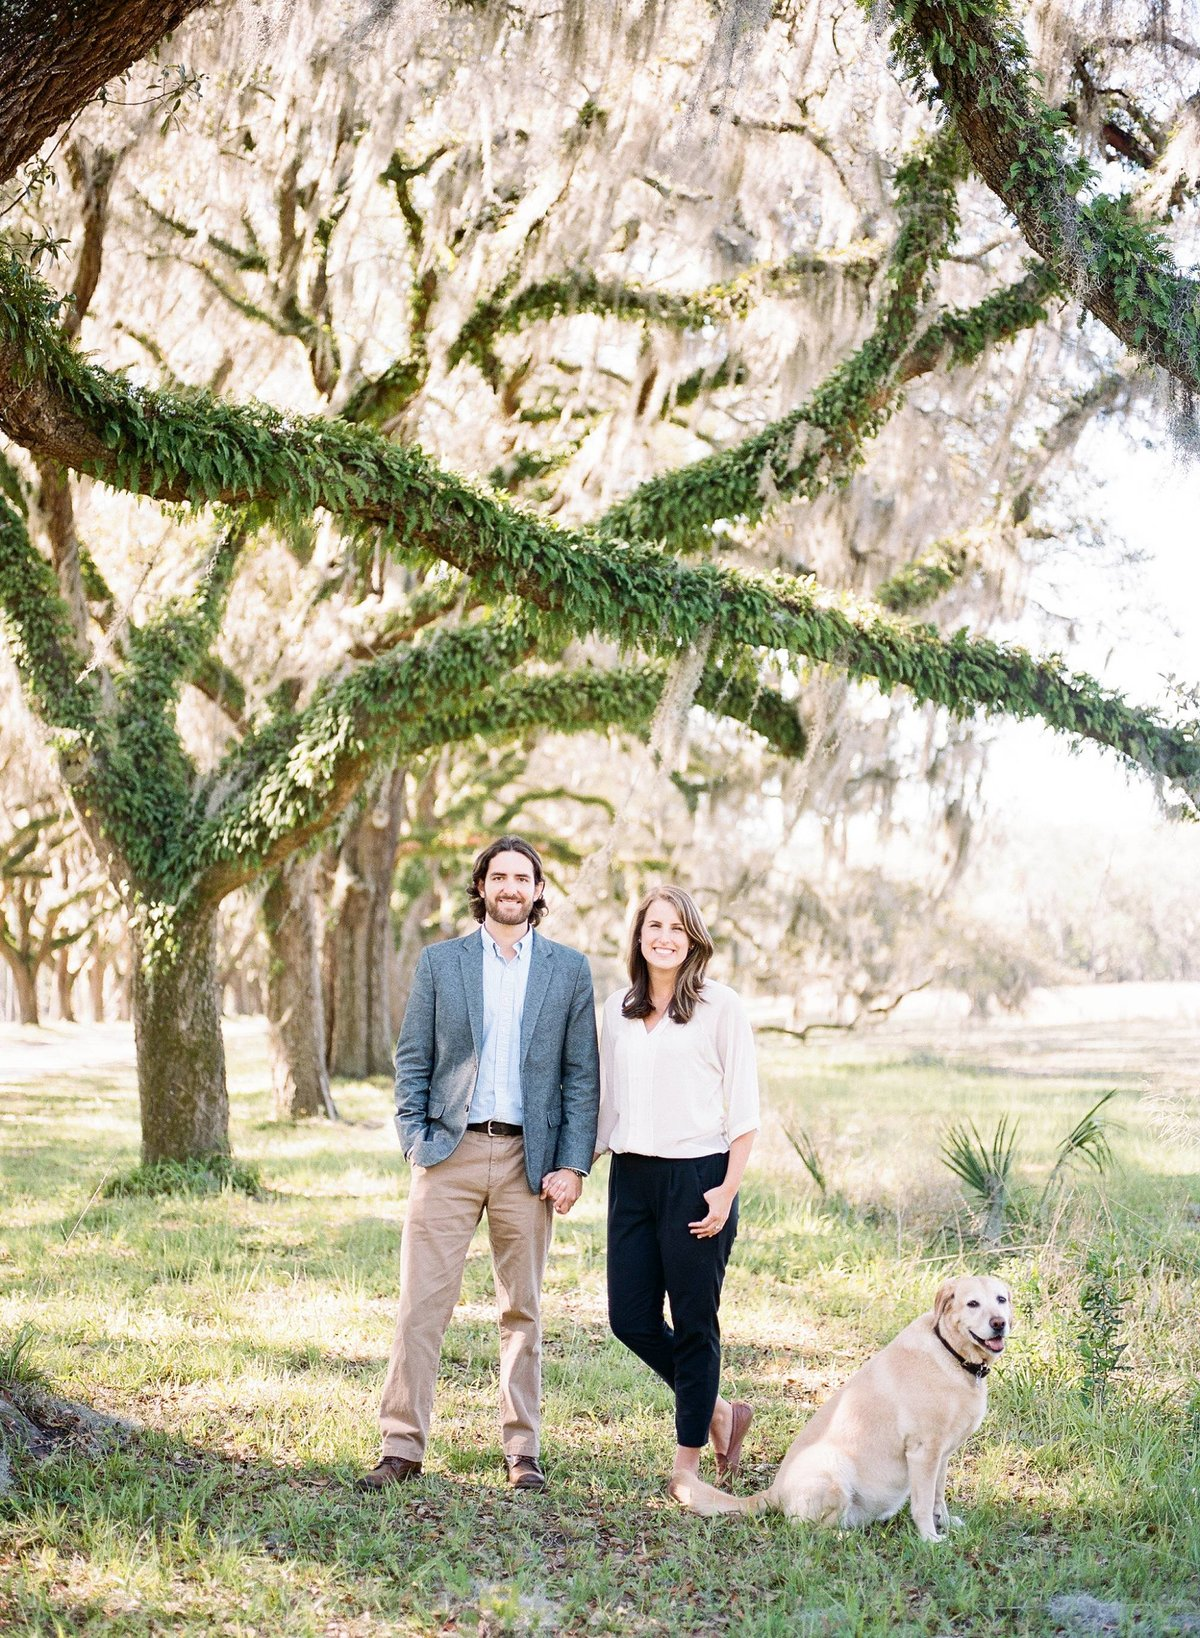 Savannah engagement, Savannah Wedding Photographer, Fine Art Film, Destination Wedding Photographers, Henry Photography_2894